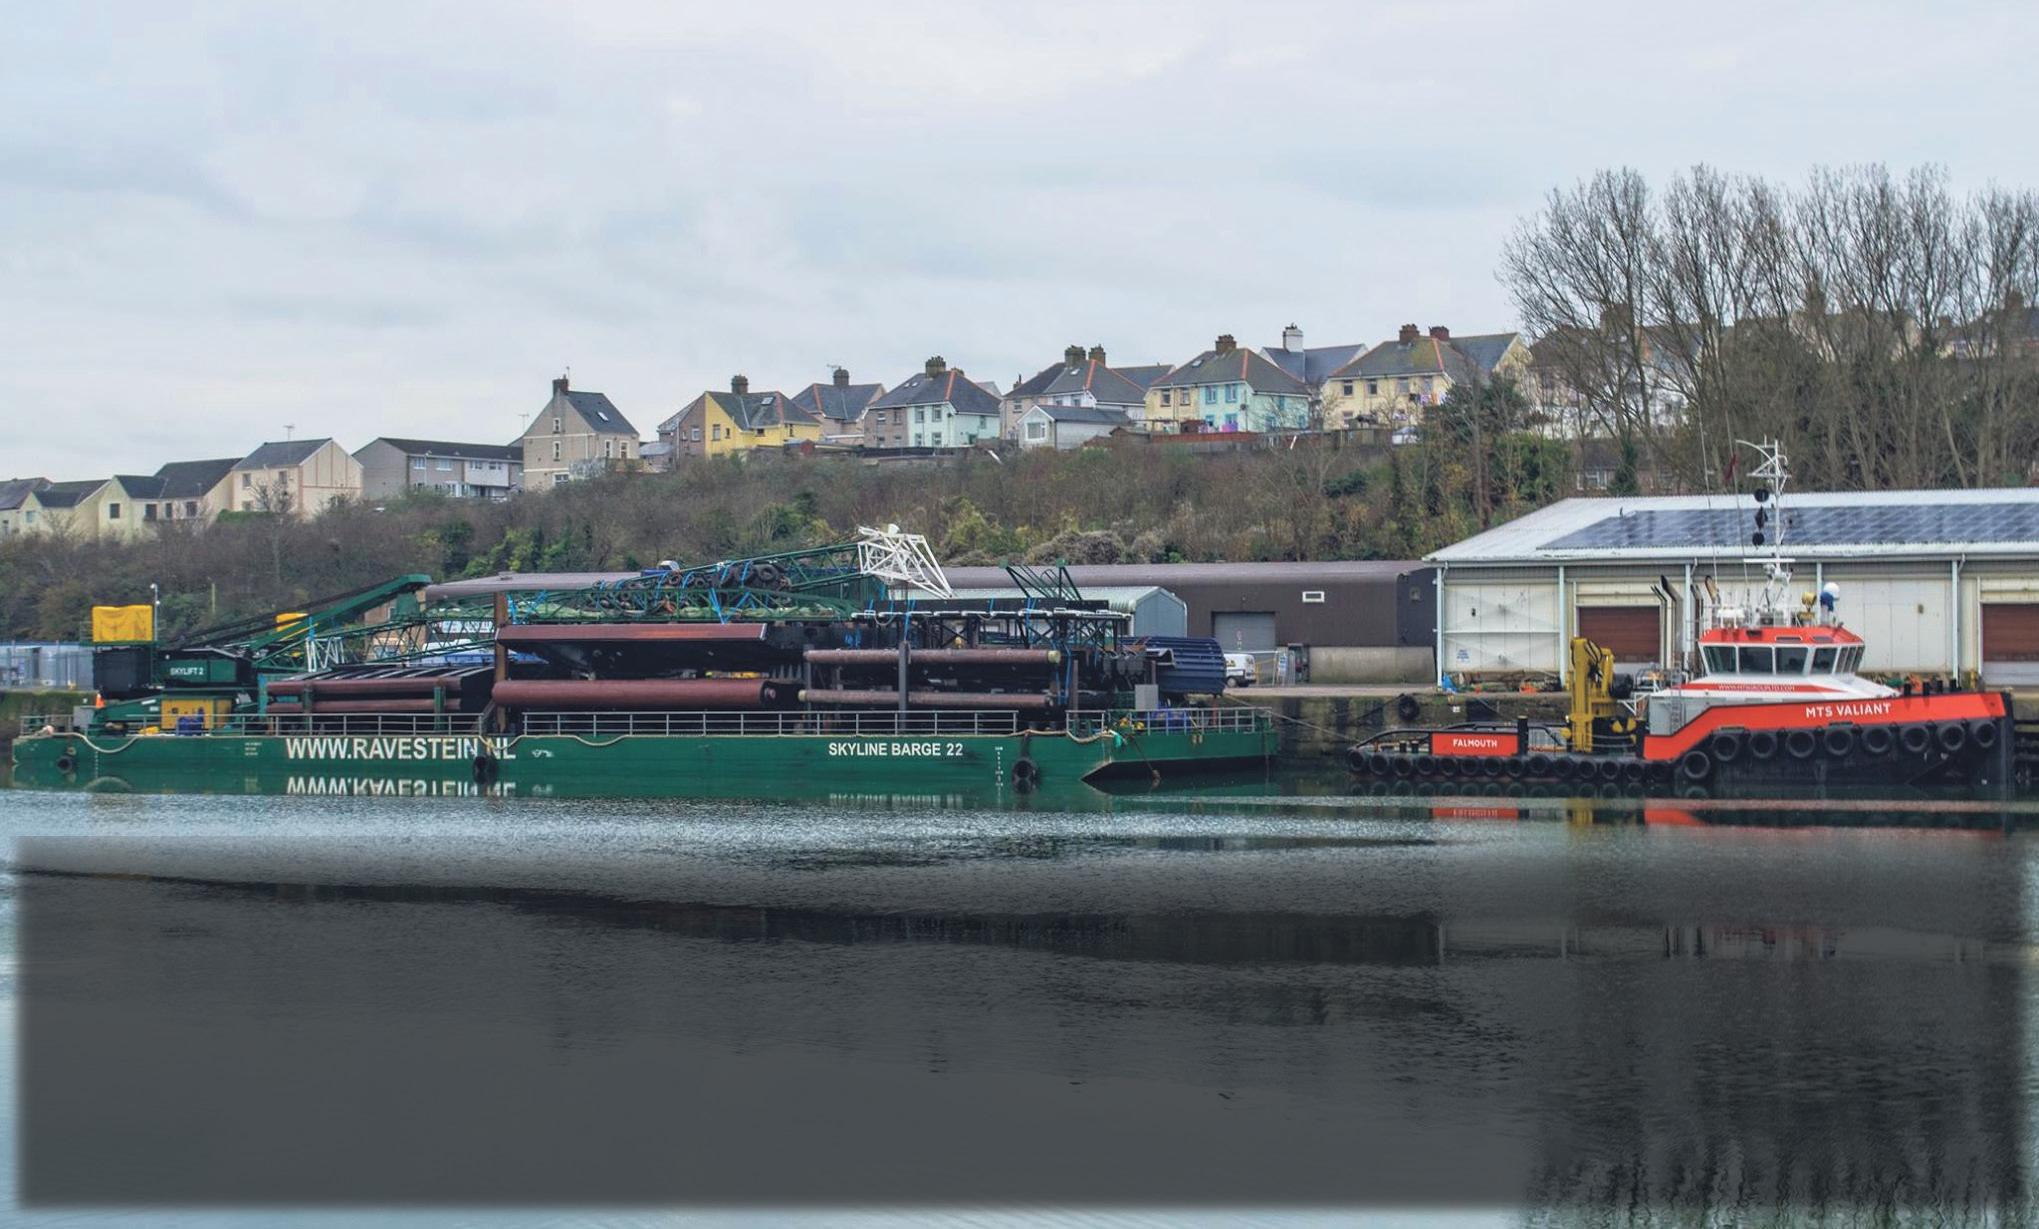 The new lock gates arrived at Milford Haven Marina on Monday December 1 on board Ravestein's Skyline barge 22. They're being towed by the tug MTS Valiant